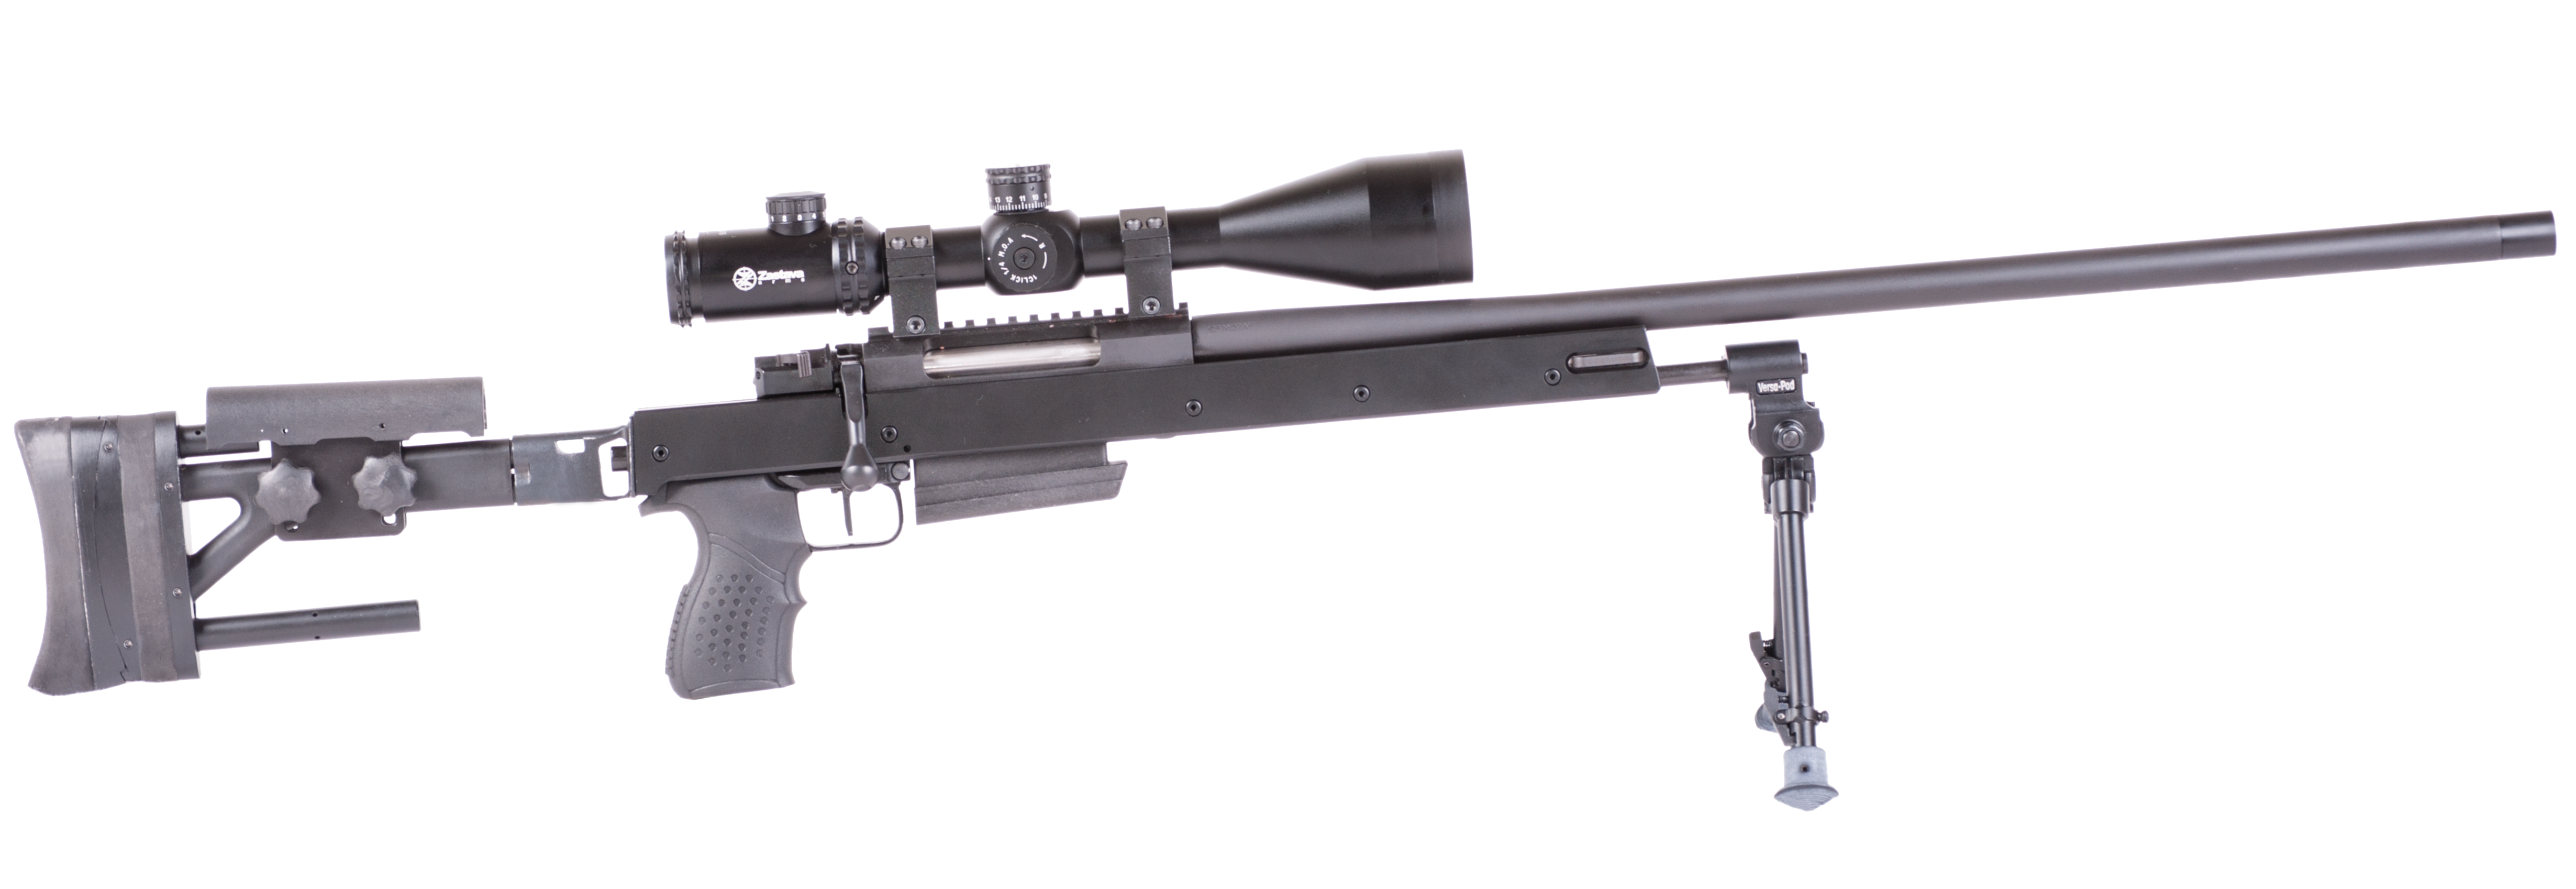 Gun clipart sniper. Rifle png images free